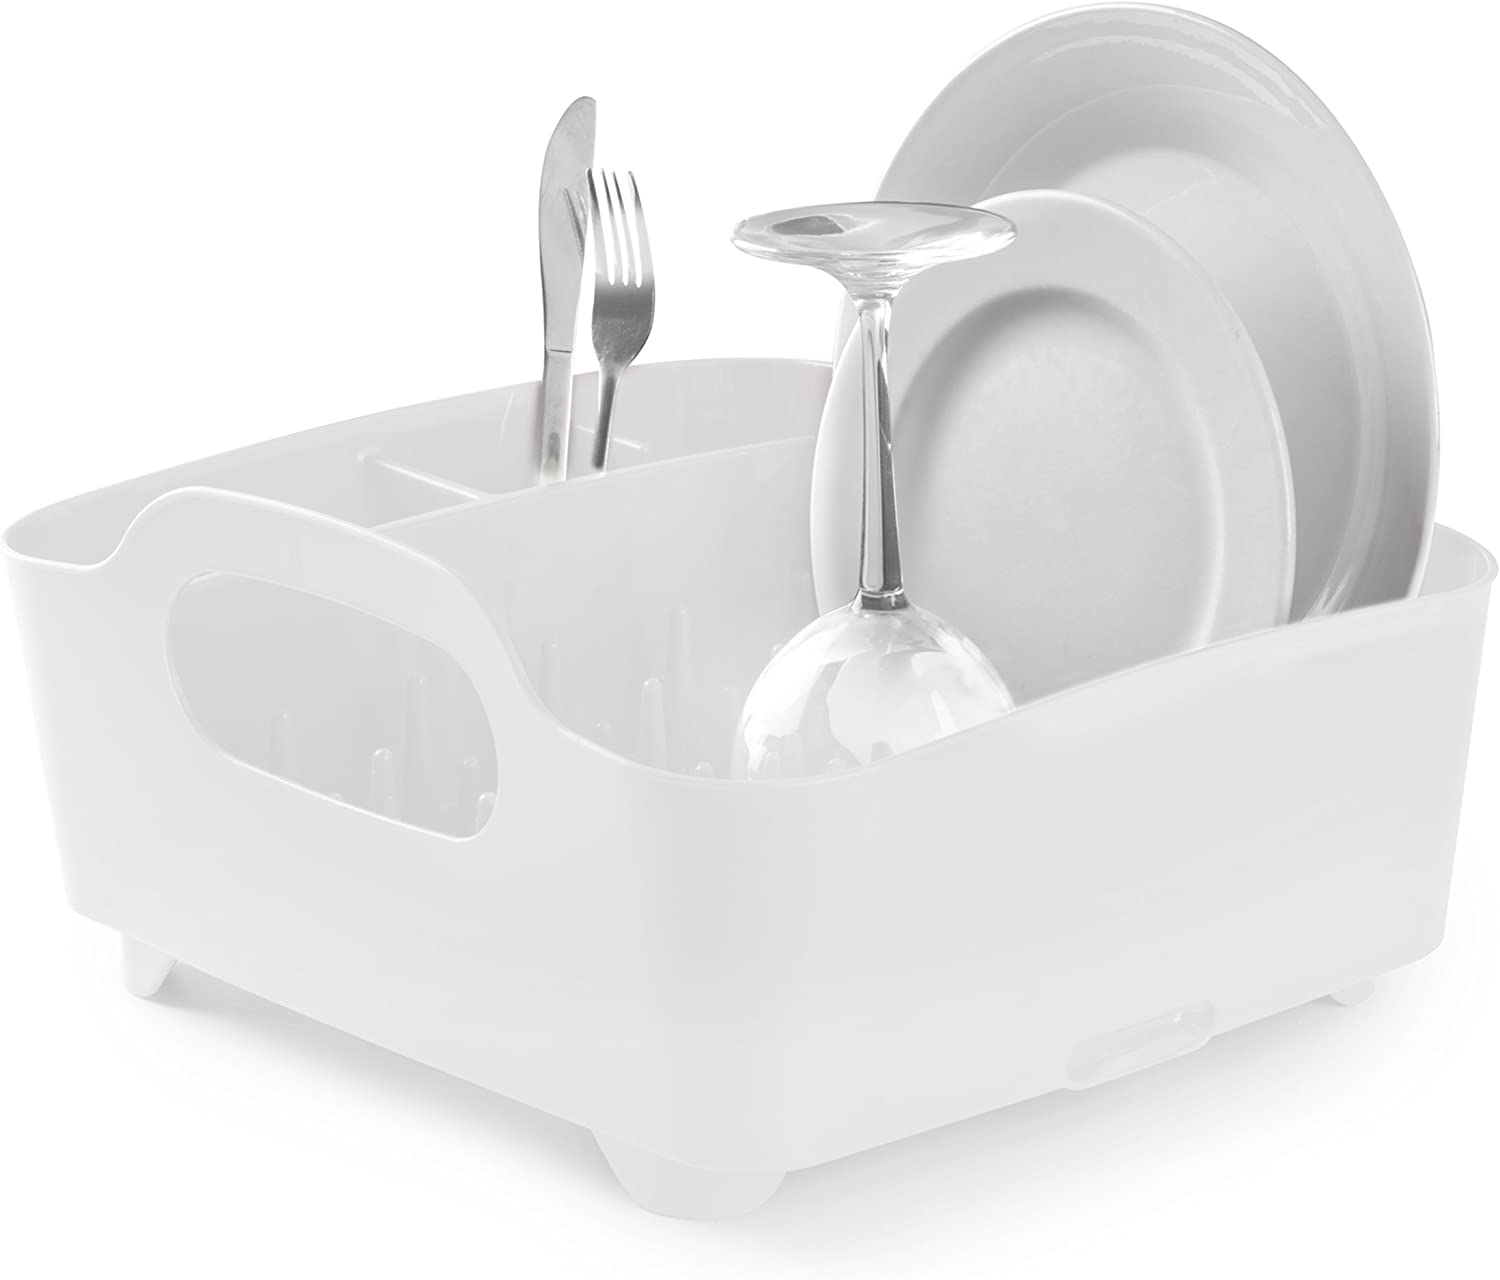 Umbra Tub Dish Drying Rack – Lightweight Self-Draining Dish Rack for Kitchen Sink and Counter at Home, RV or Motorhome, White